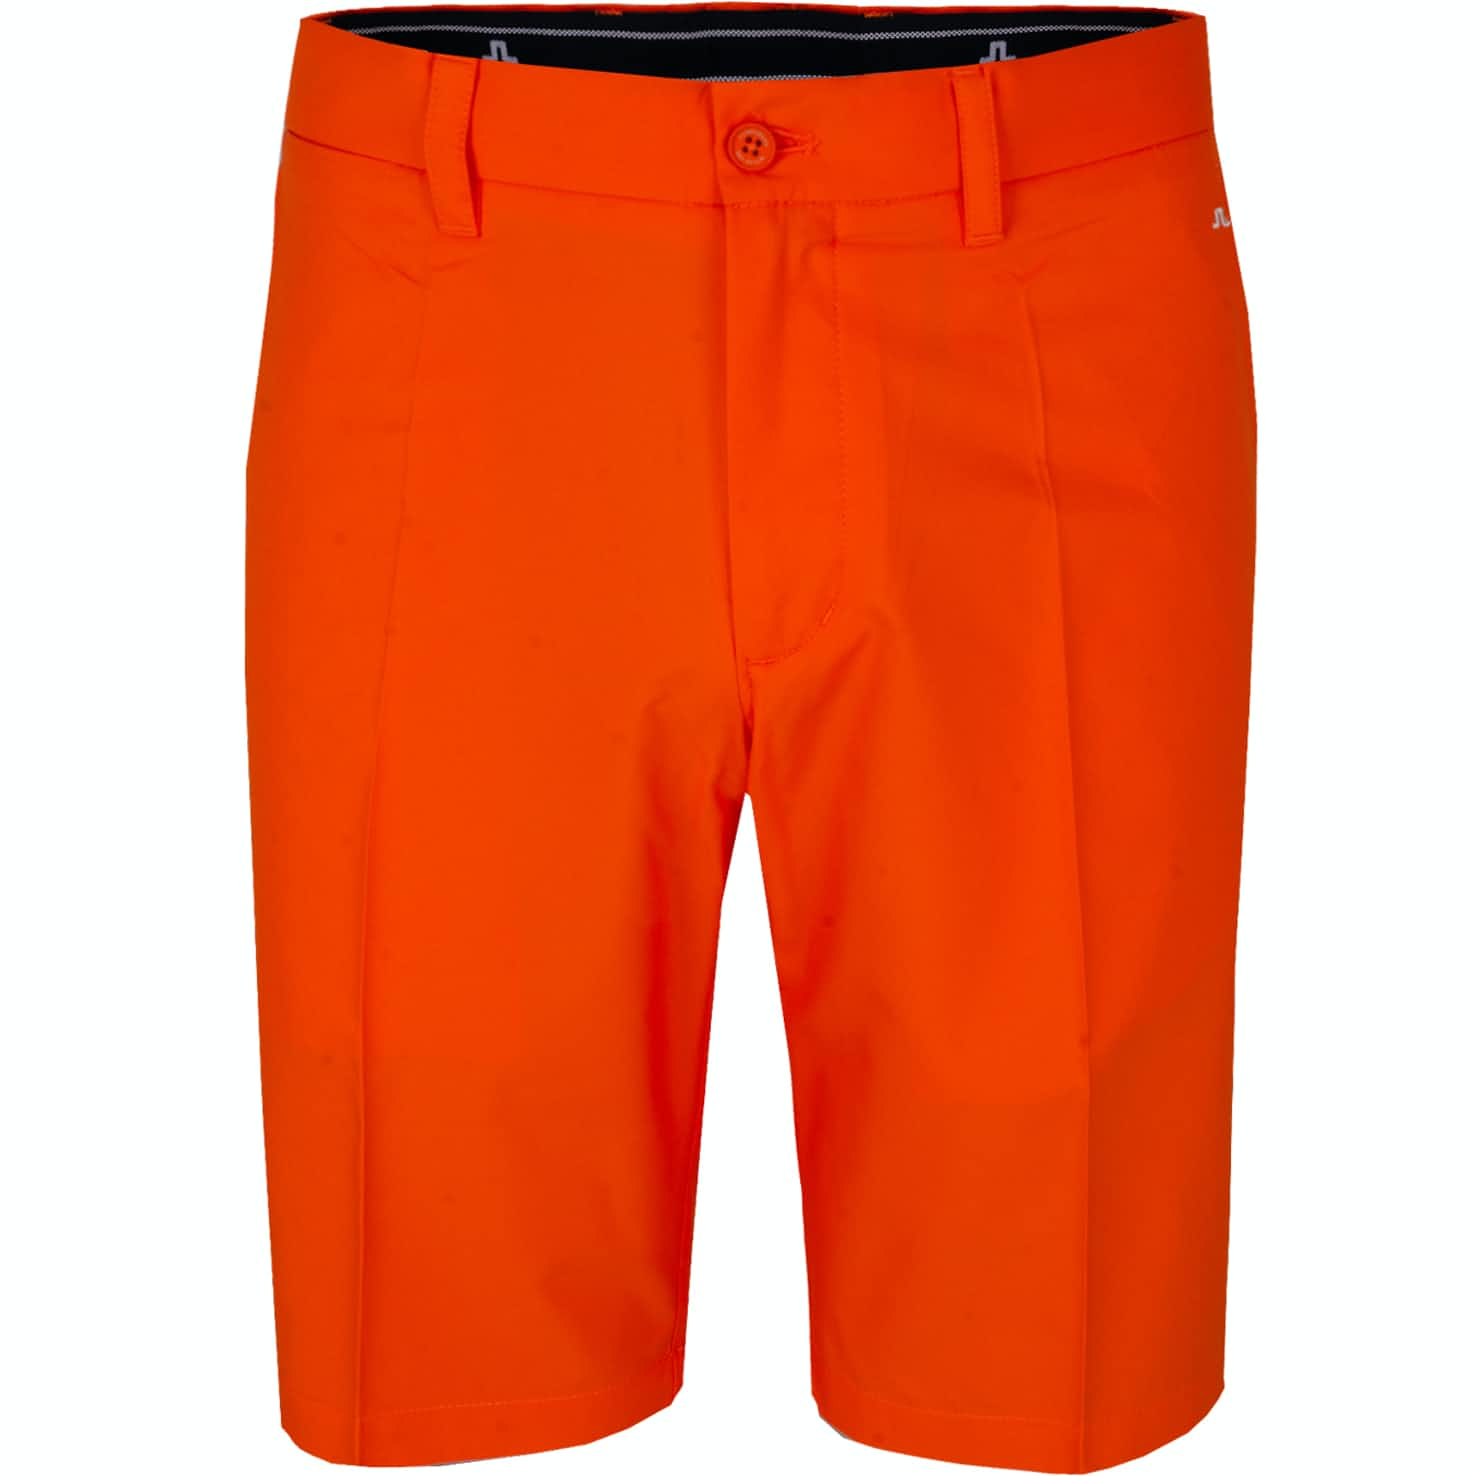 Somle Tapered Light Poly Juicy Orange - AW19